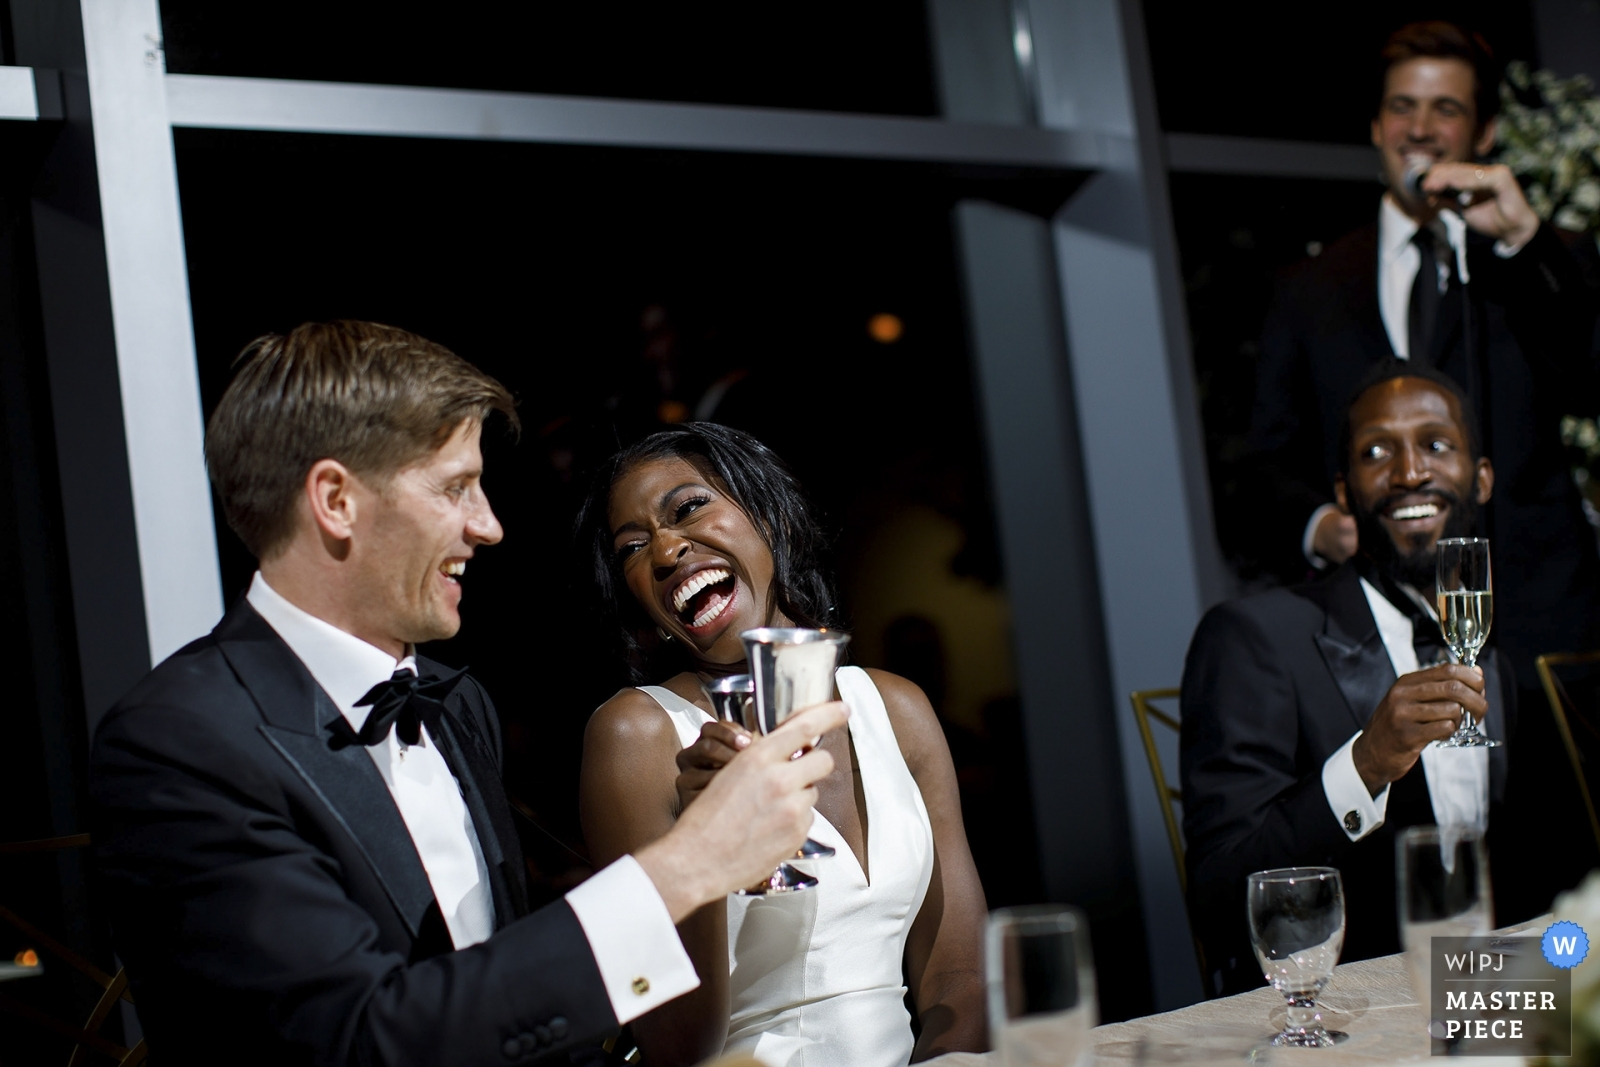 The bride and groom share a laugh during a toast at the Denver Museum of Nature and Science - Denver, Colorado Wedding Photography -  | Denver Museum of Nature and Science